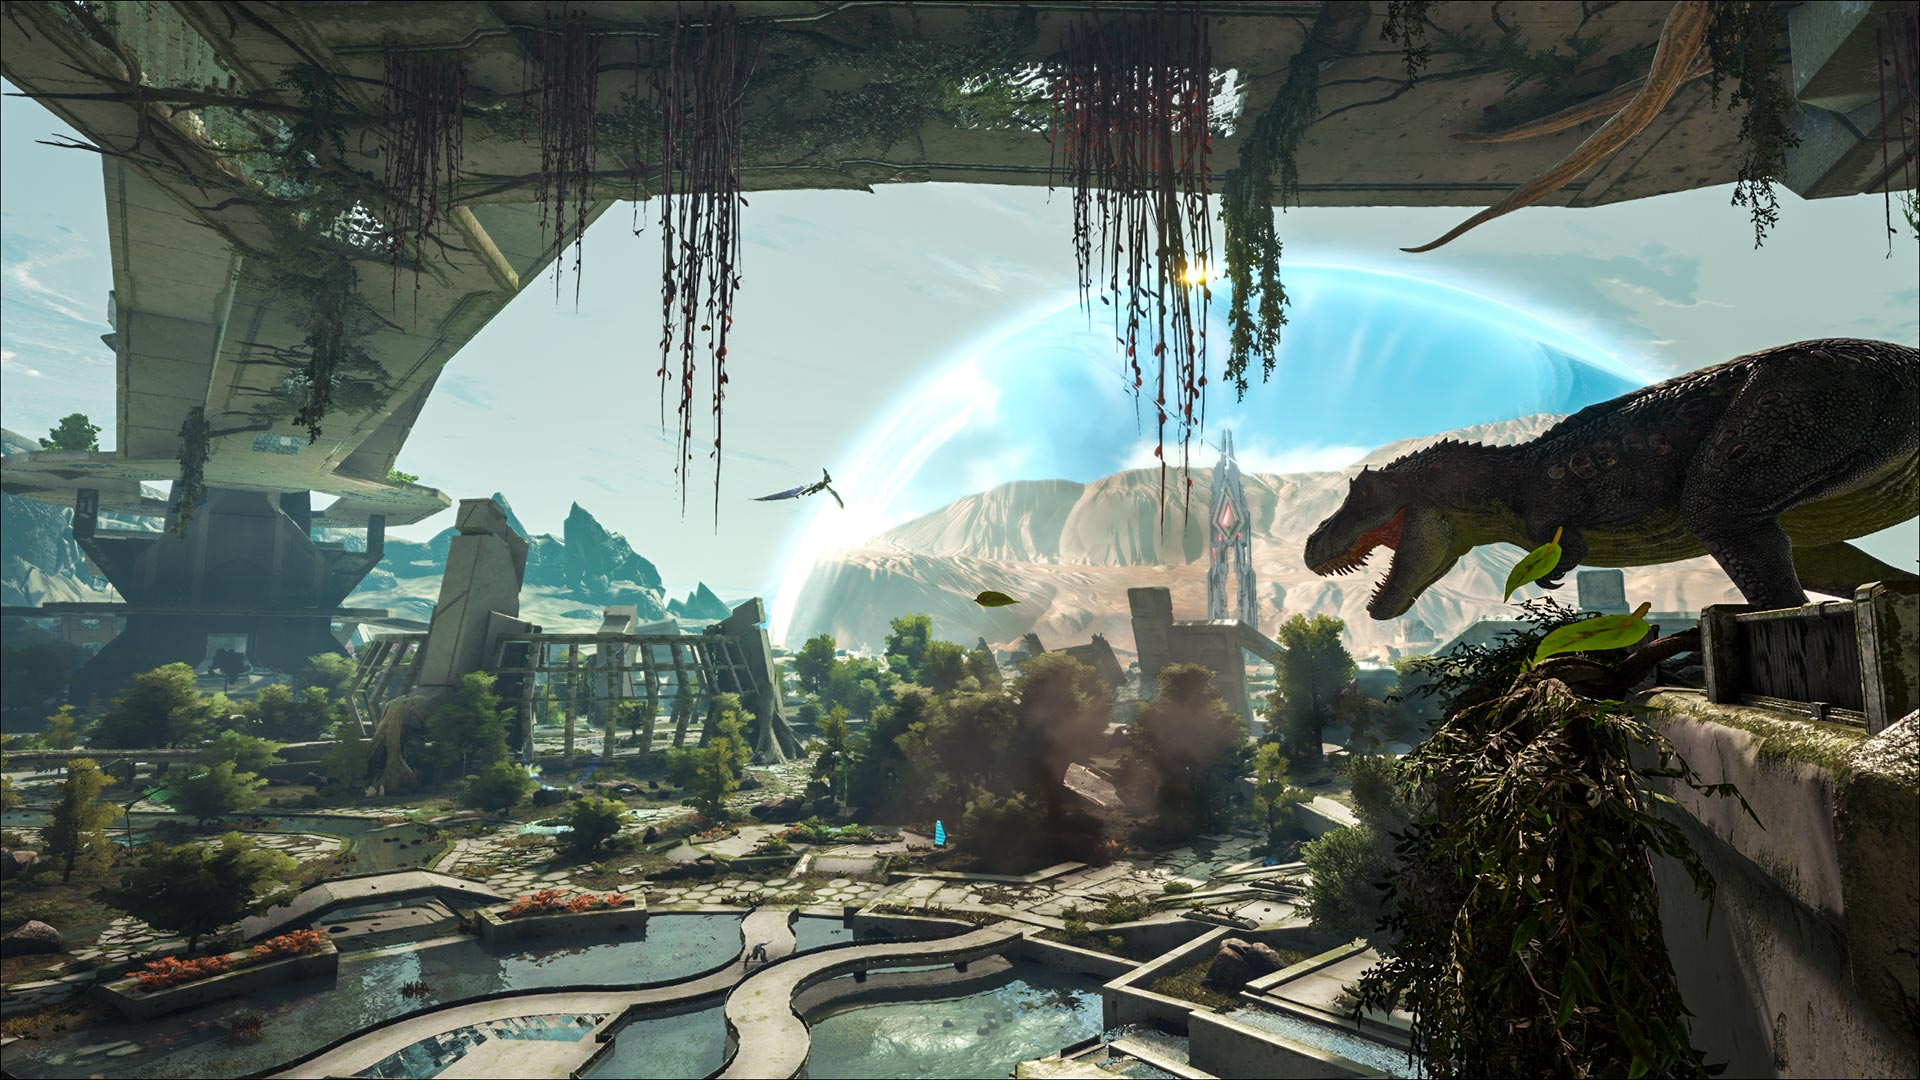 Nov 15, 2018 Wot I Think Ark: Extinction ARK: Survival